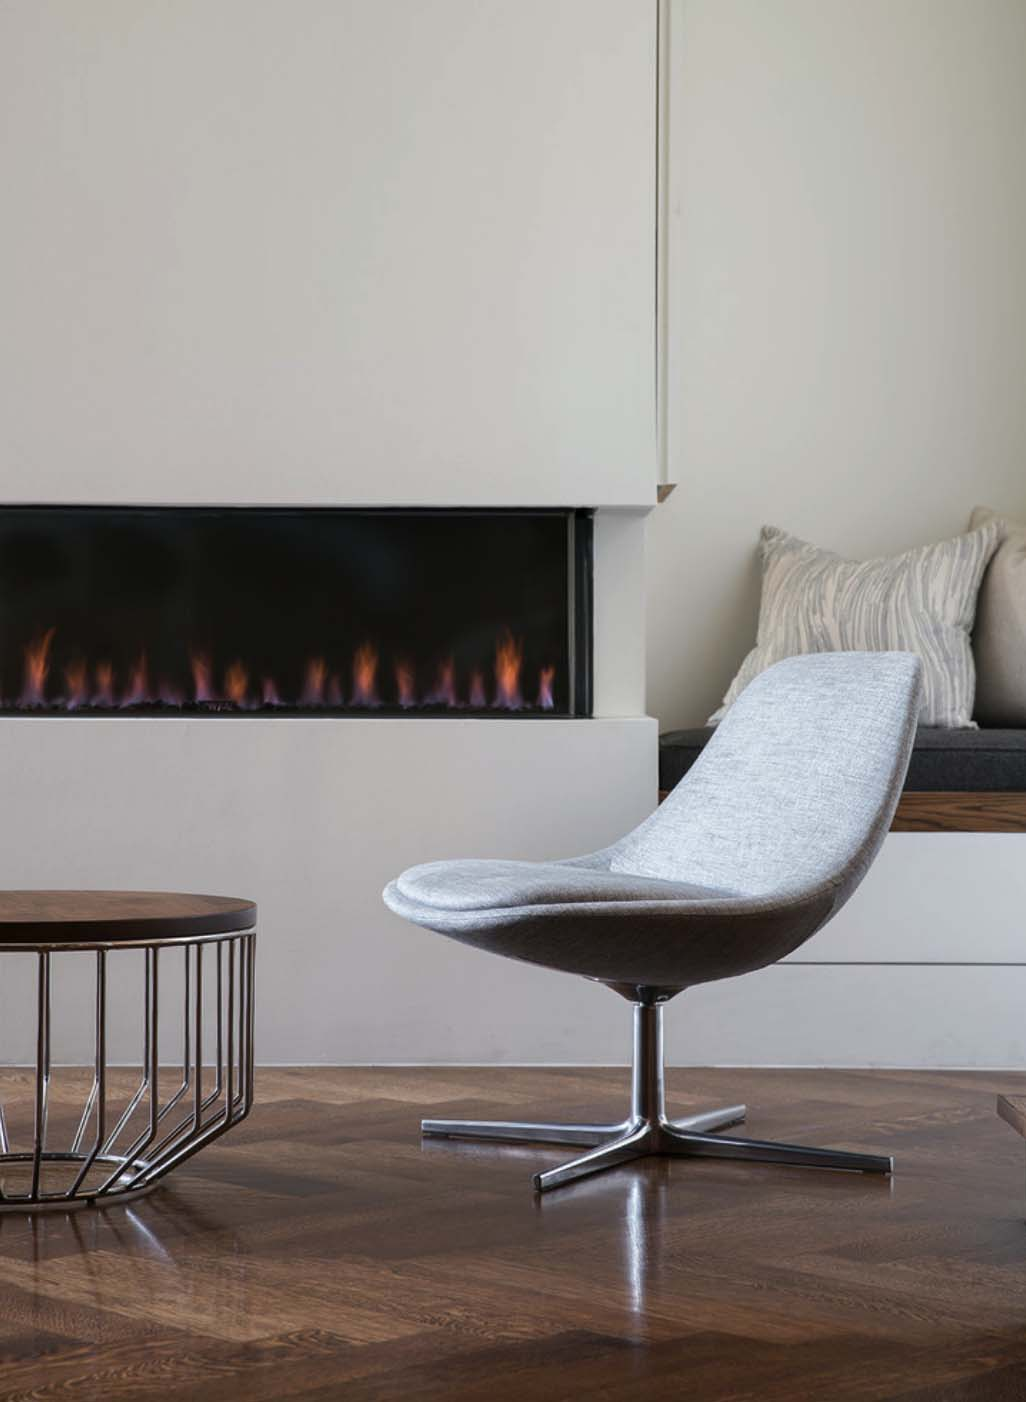 Contemporary Home Design-Fireplace